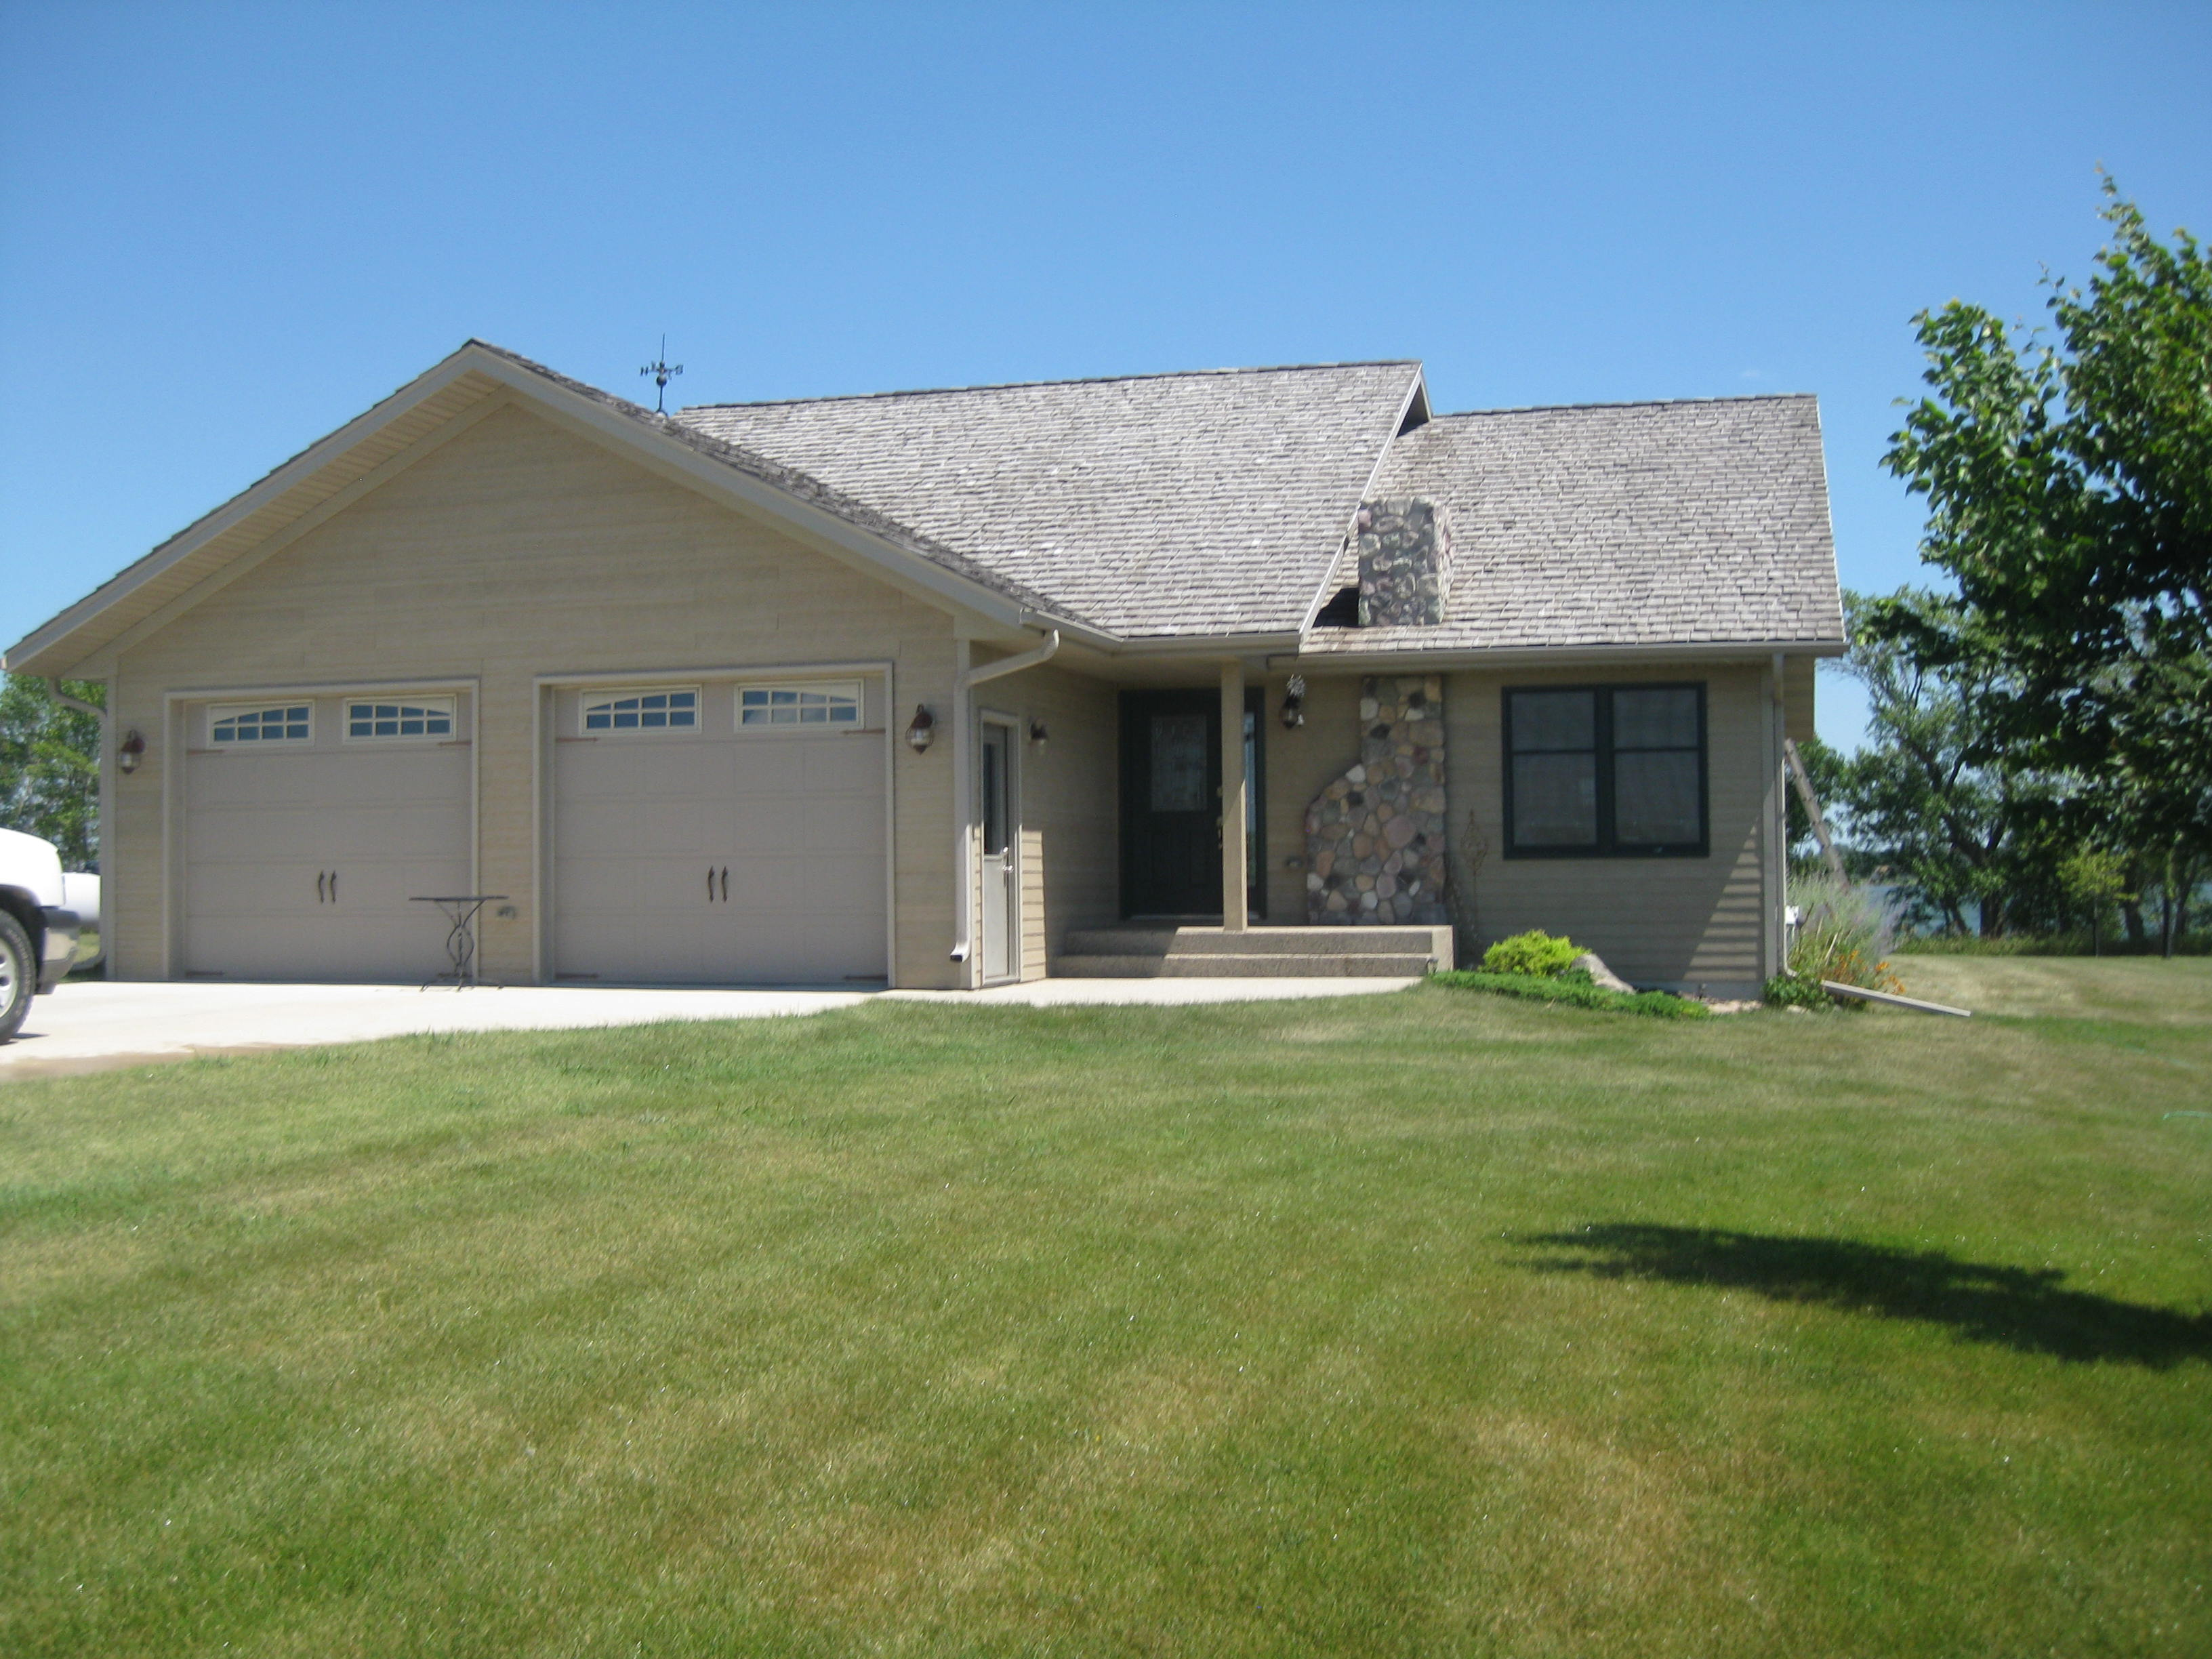 31396 257th Ave, Wendell, Minnesota 56590